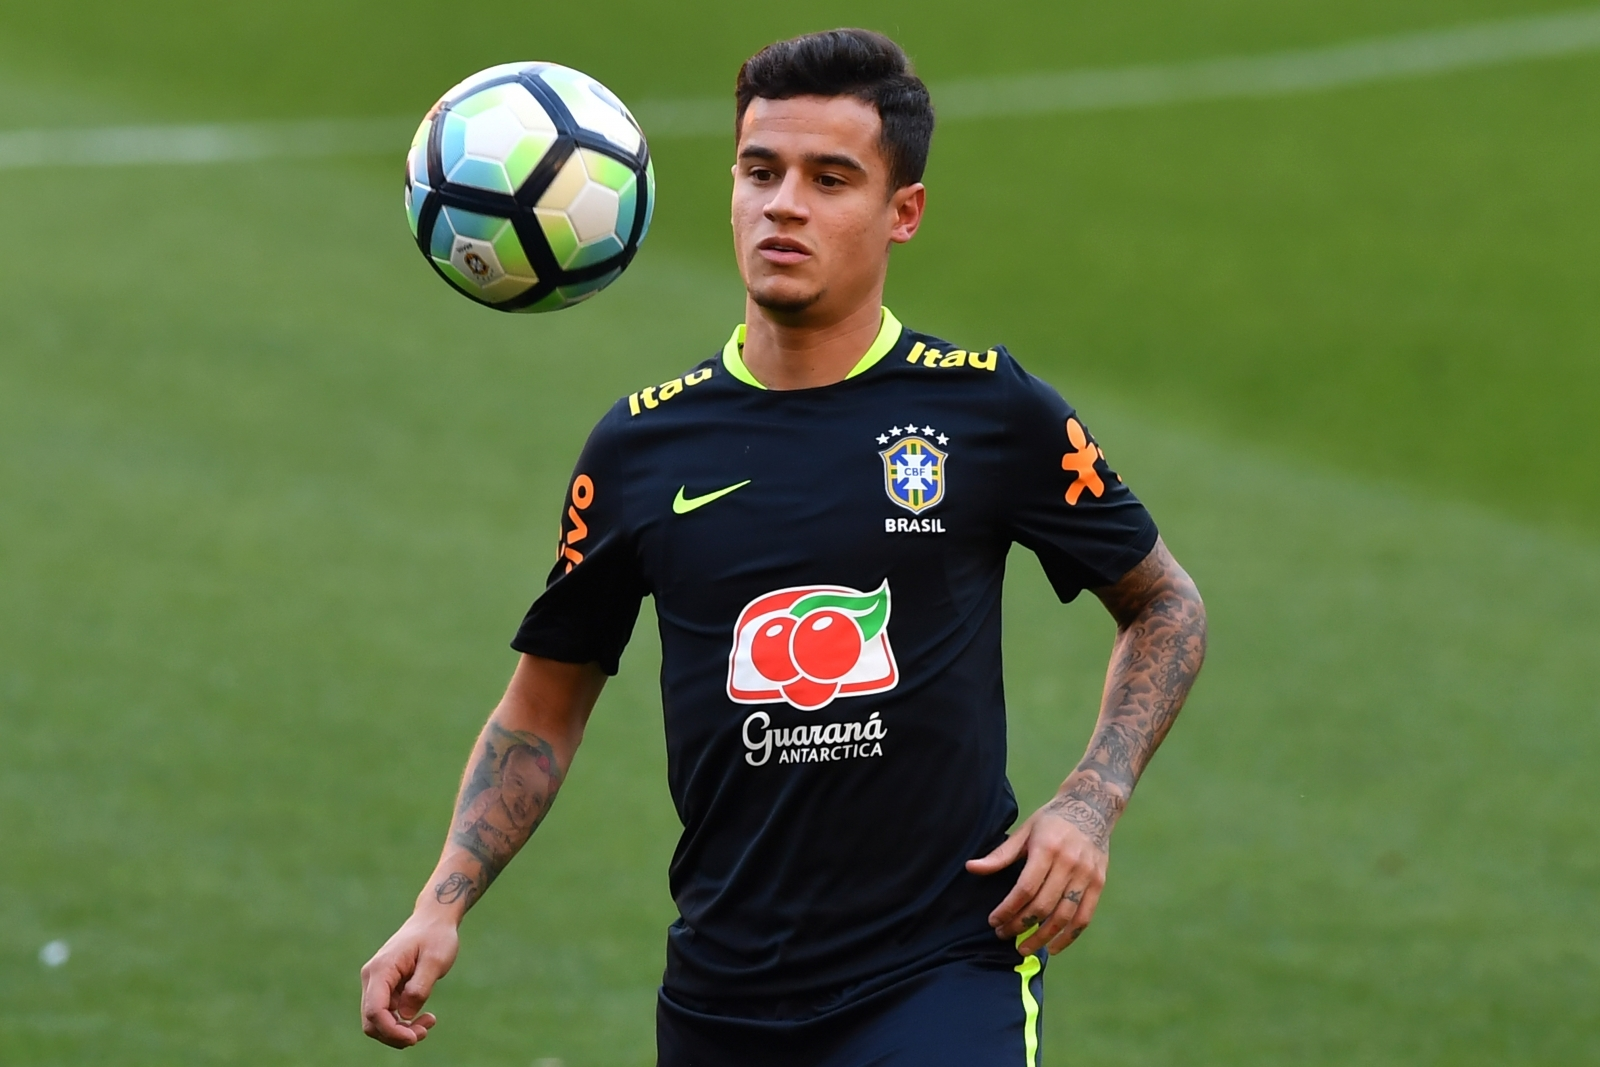 Liverpool wanted $237 million for Philippe Coutinho — Barcelona